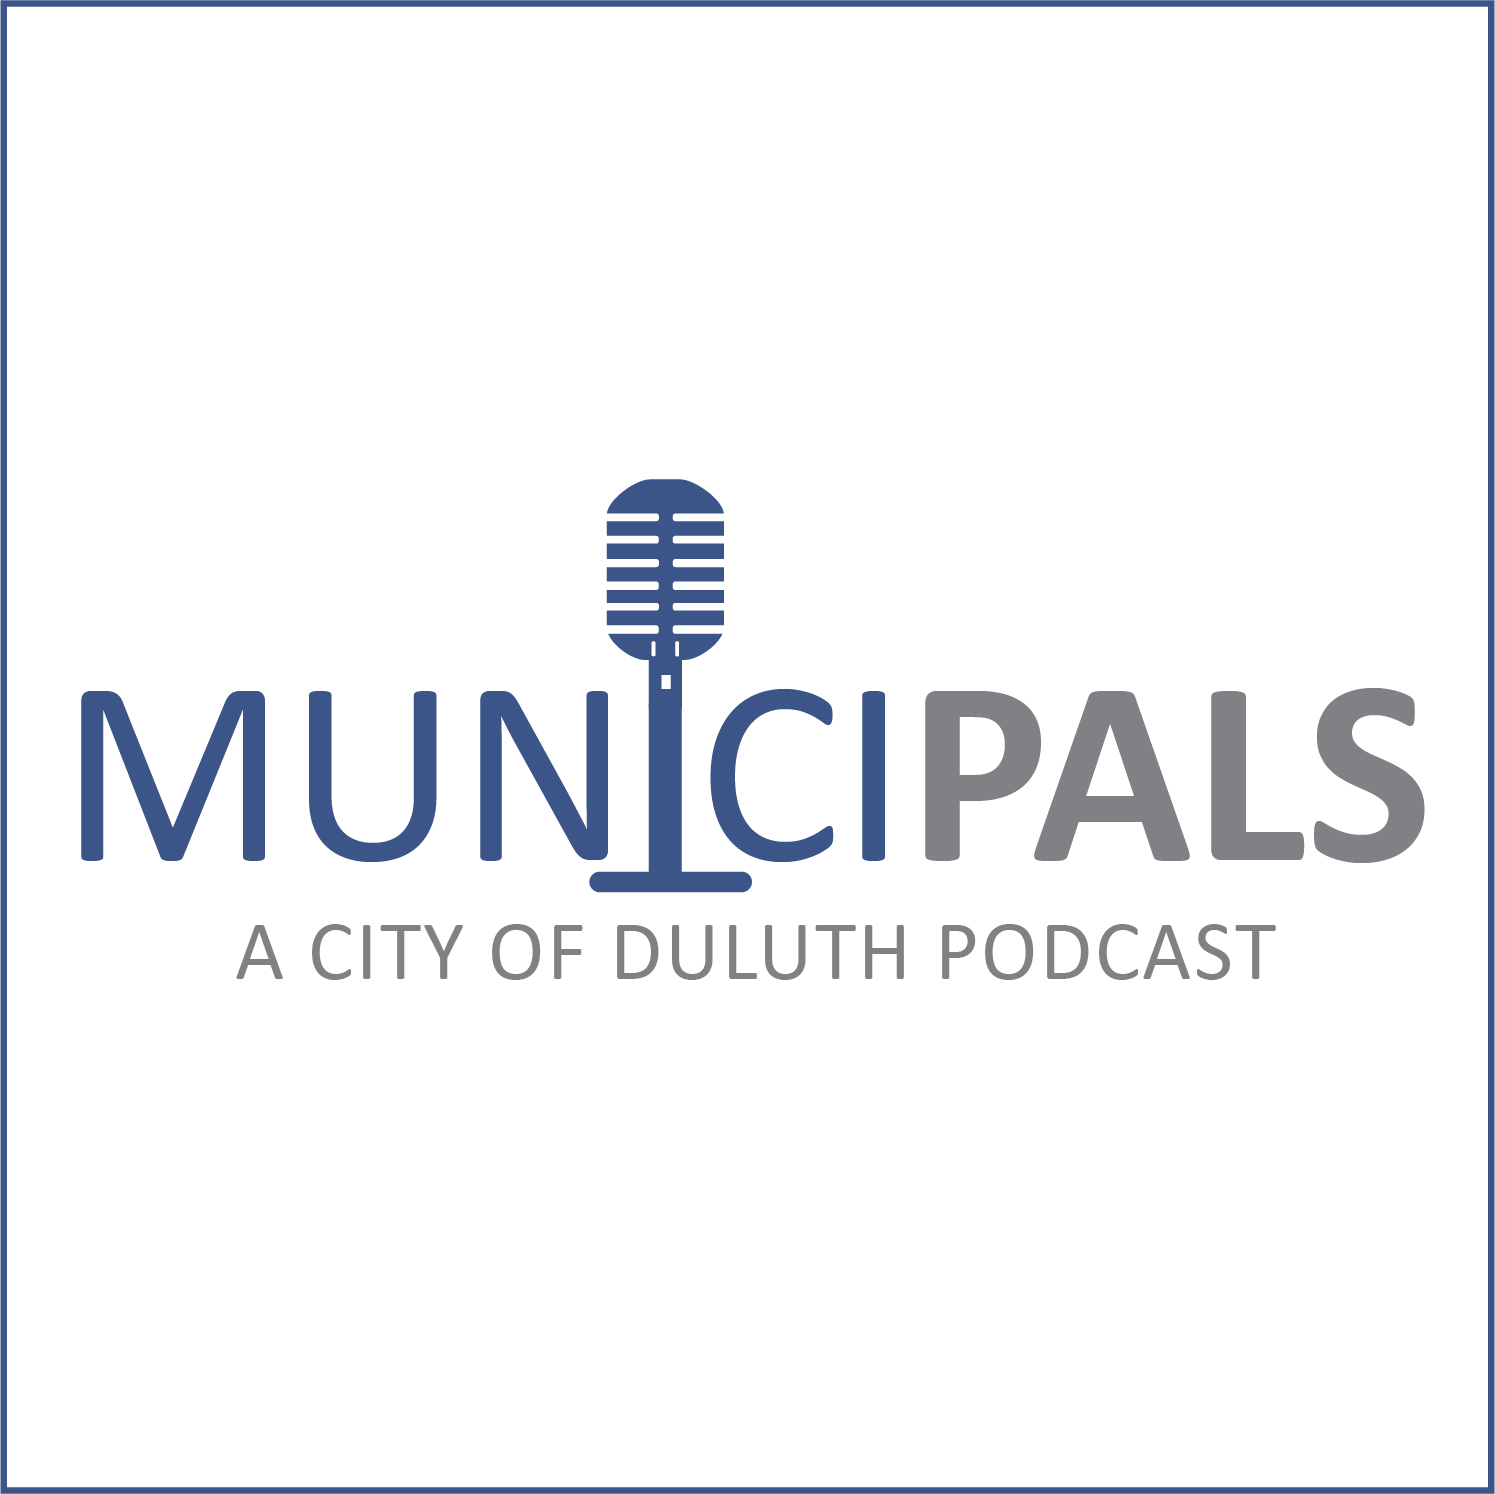 MuniciPals - a City of Duluth, MN Podcast